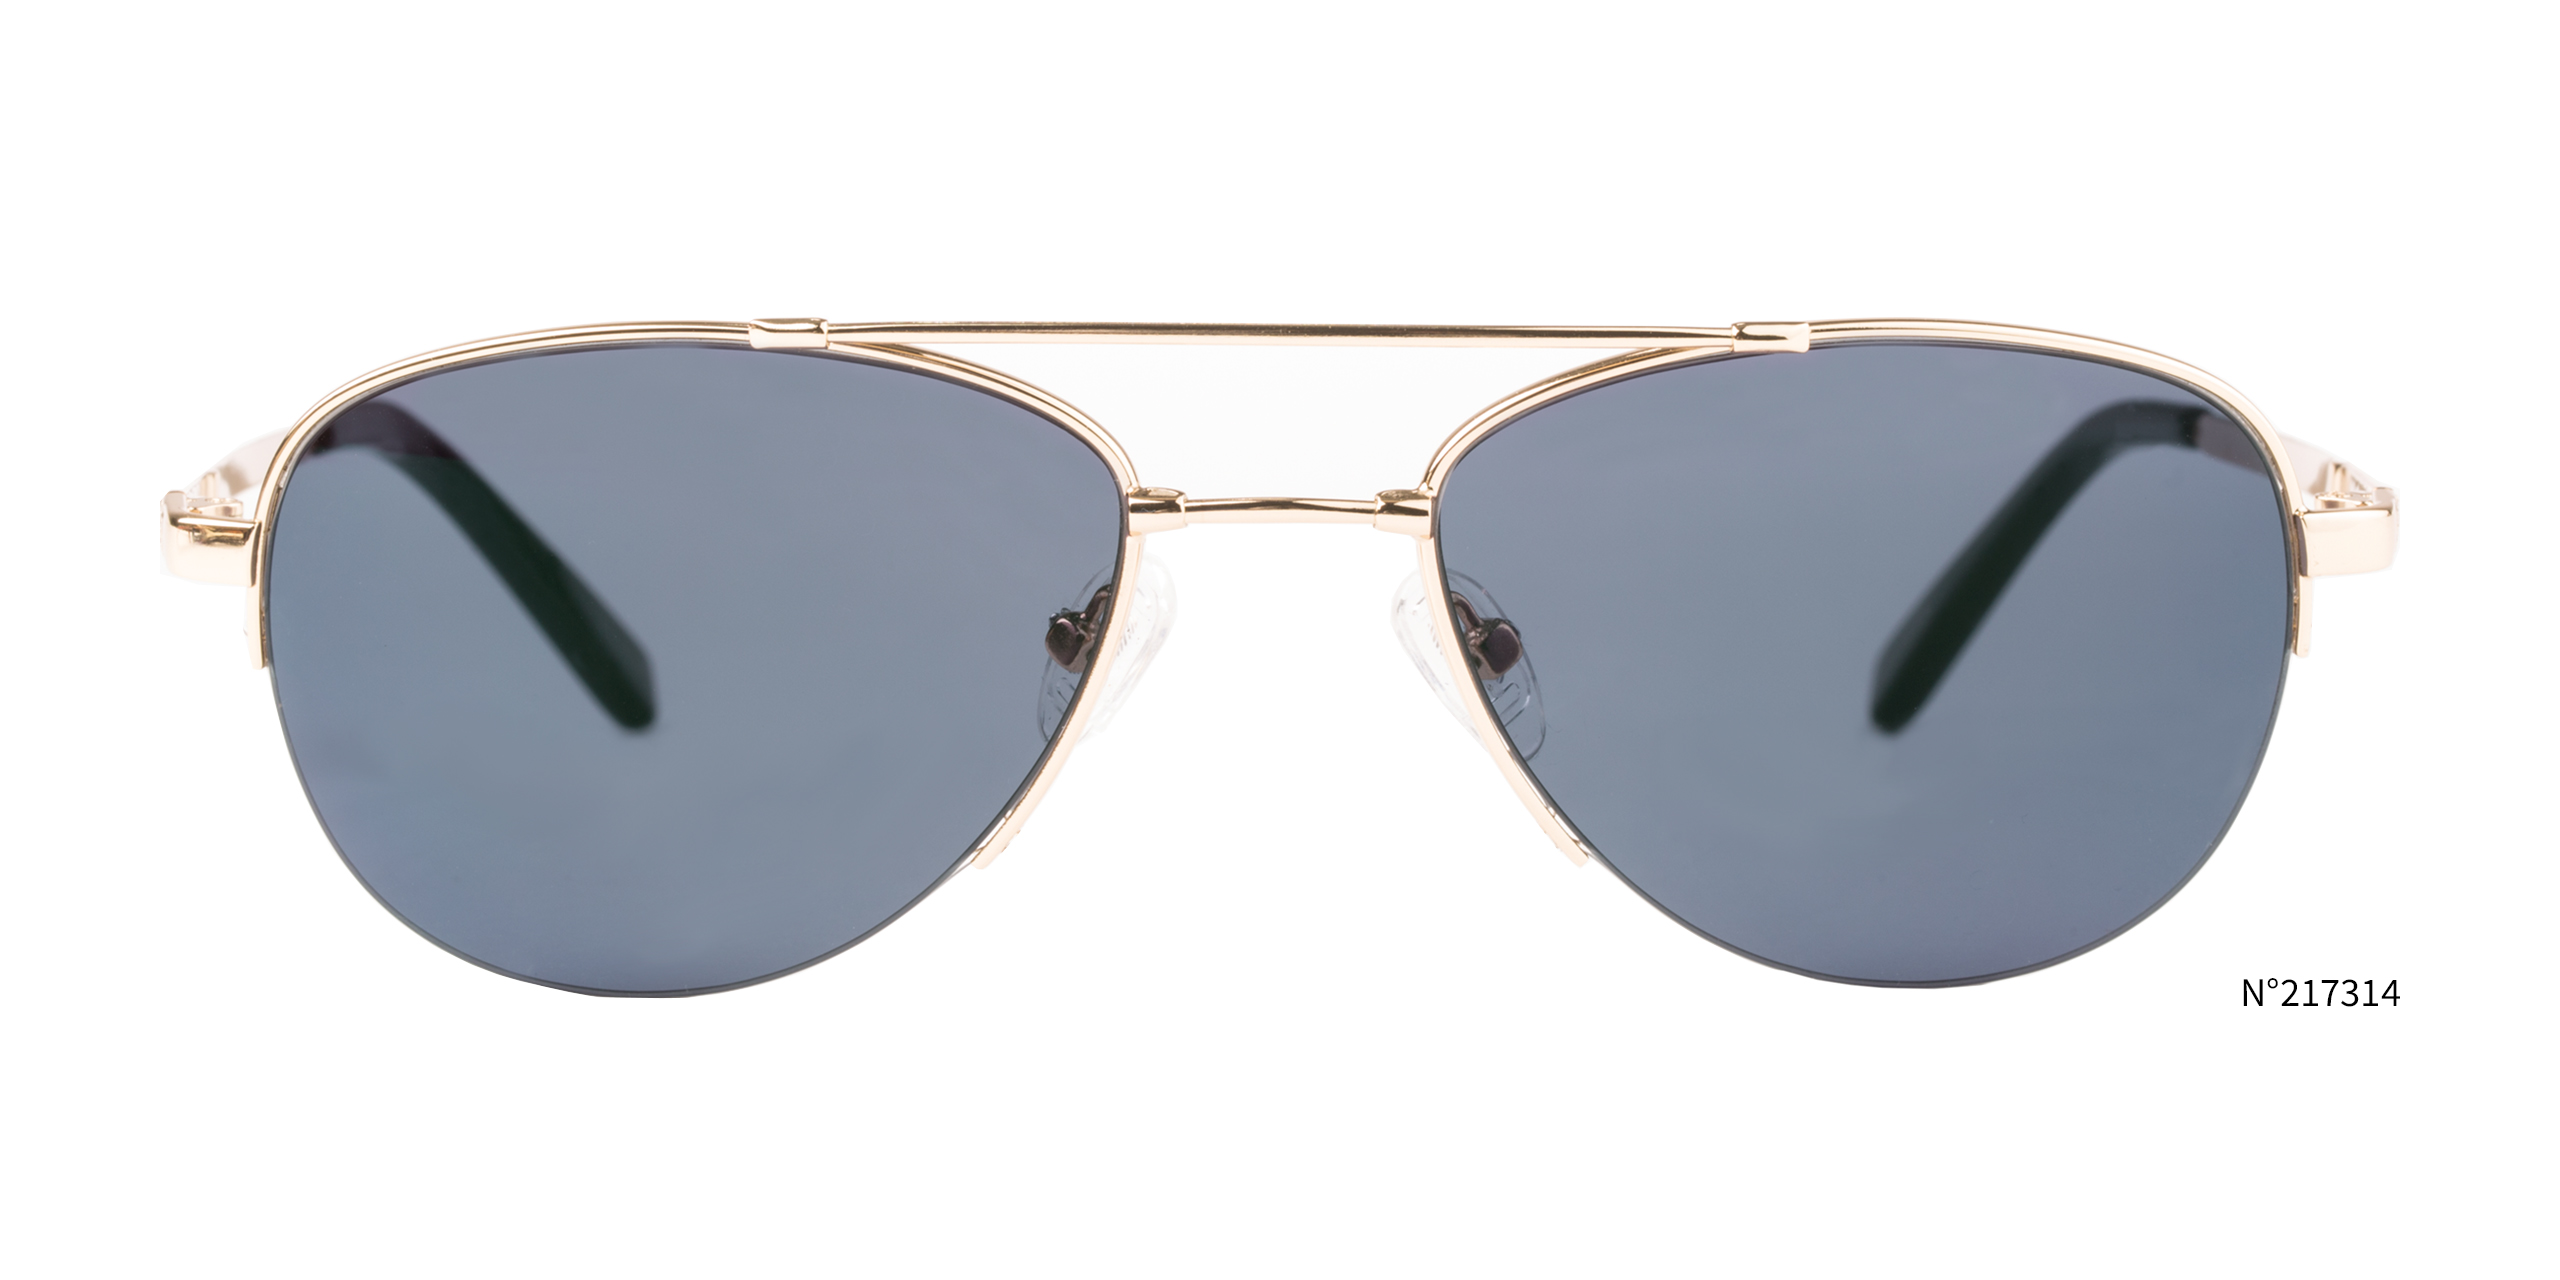 mens country glasses aviators